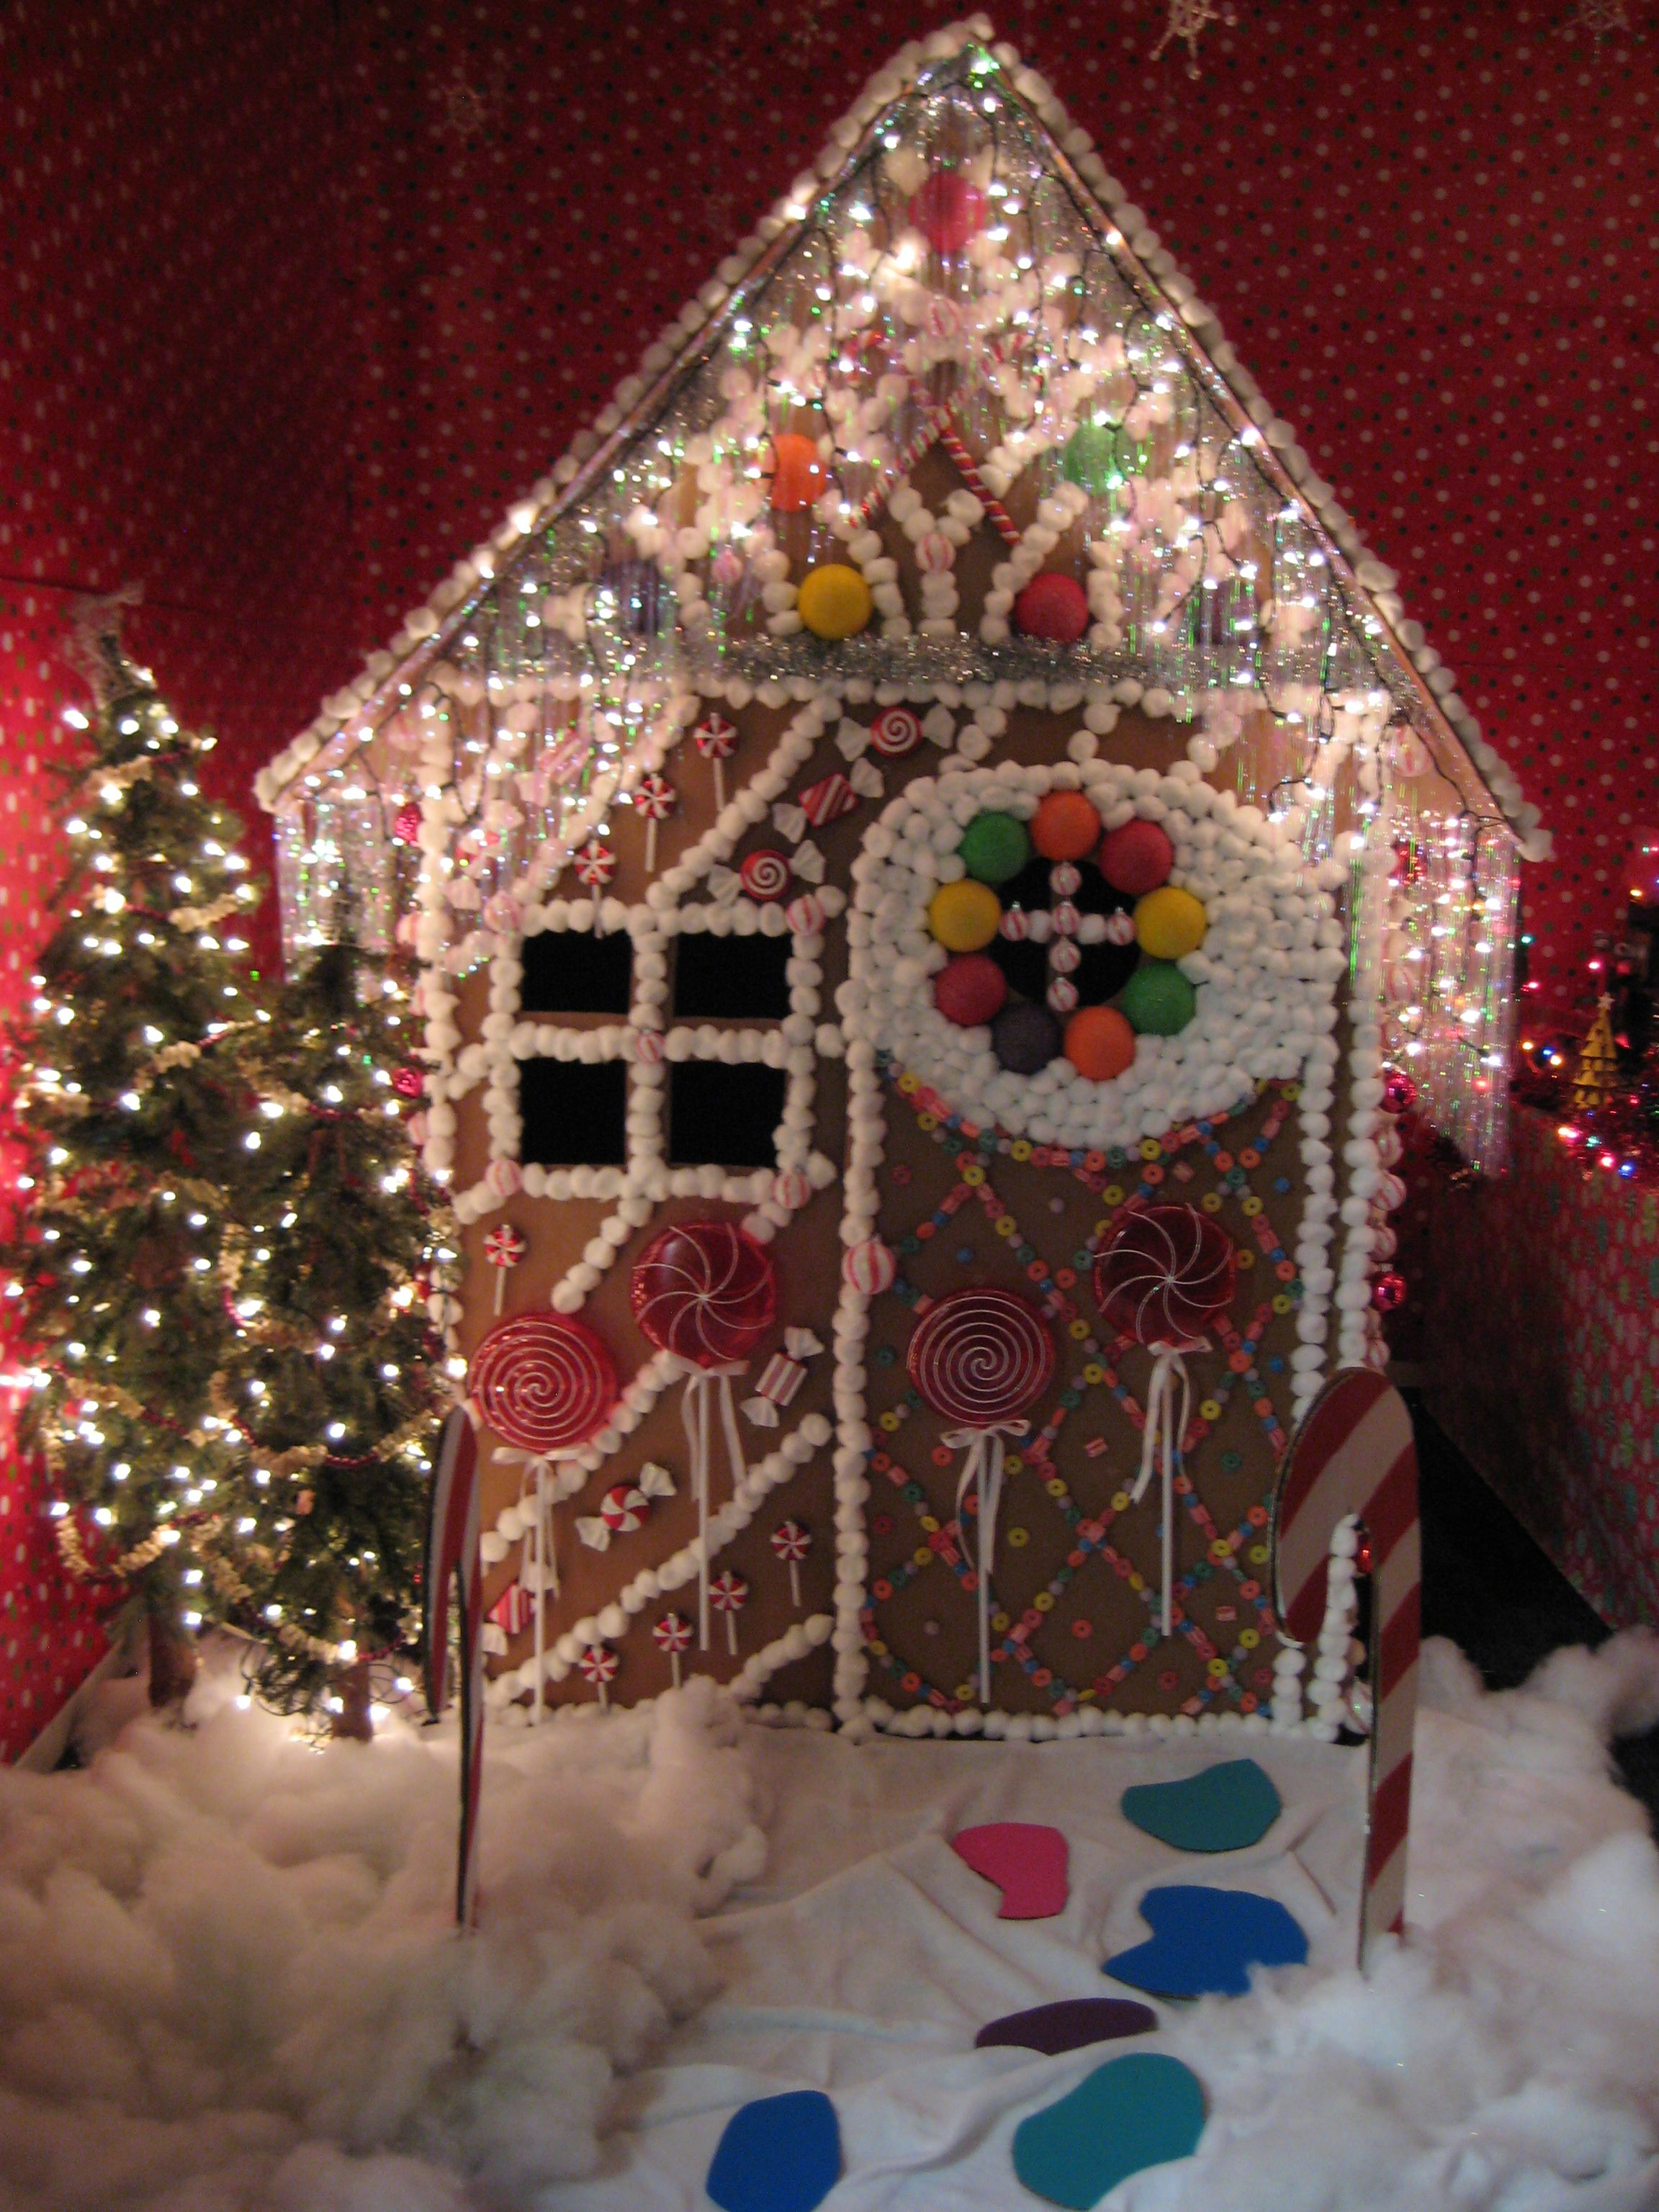 Pin By Debbie Tomasulo On Chirstmas Pinterest